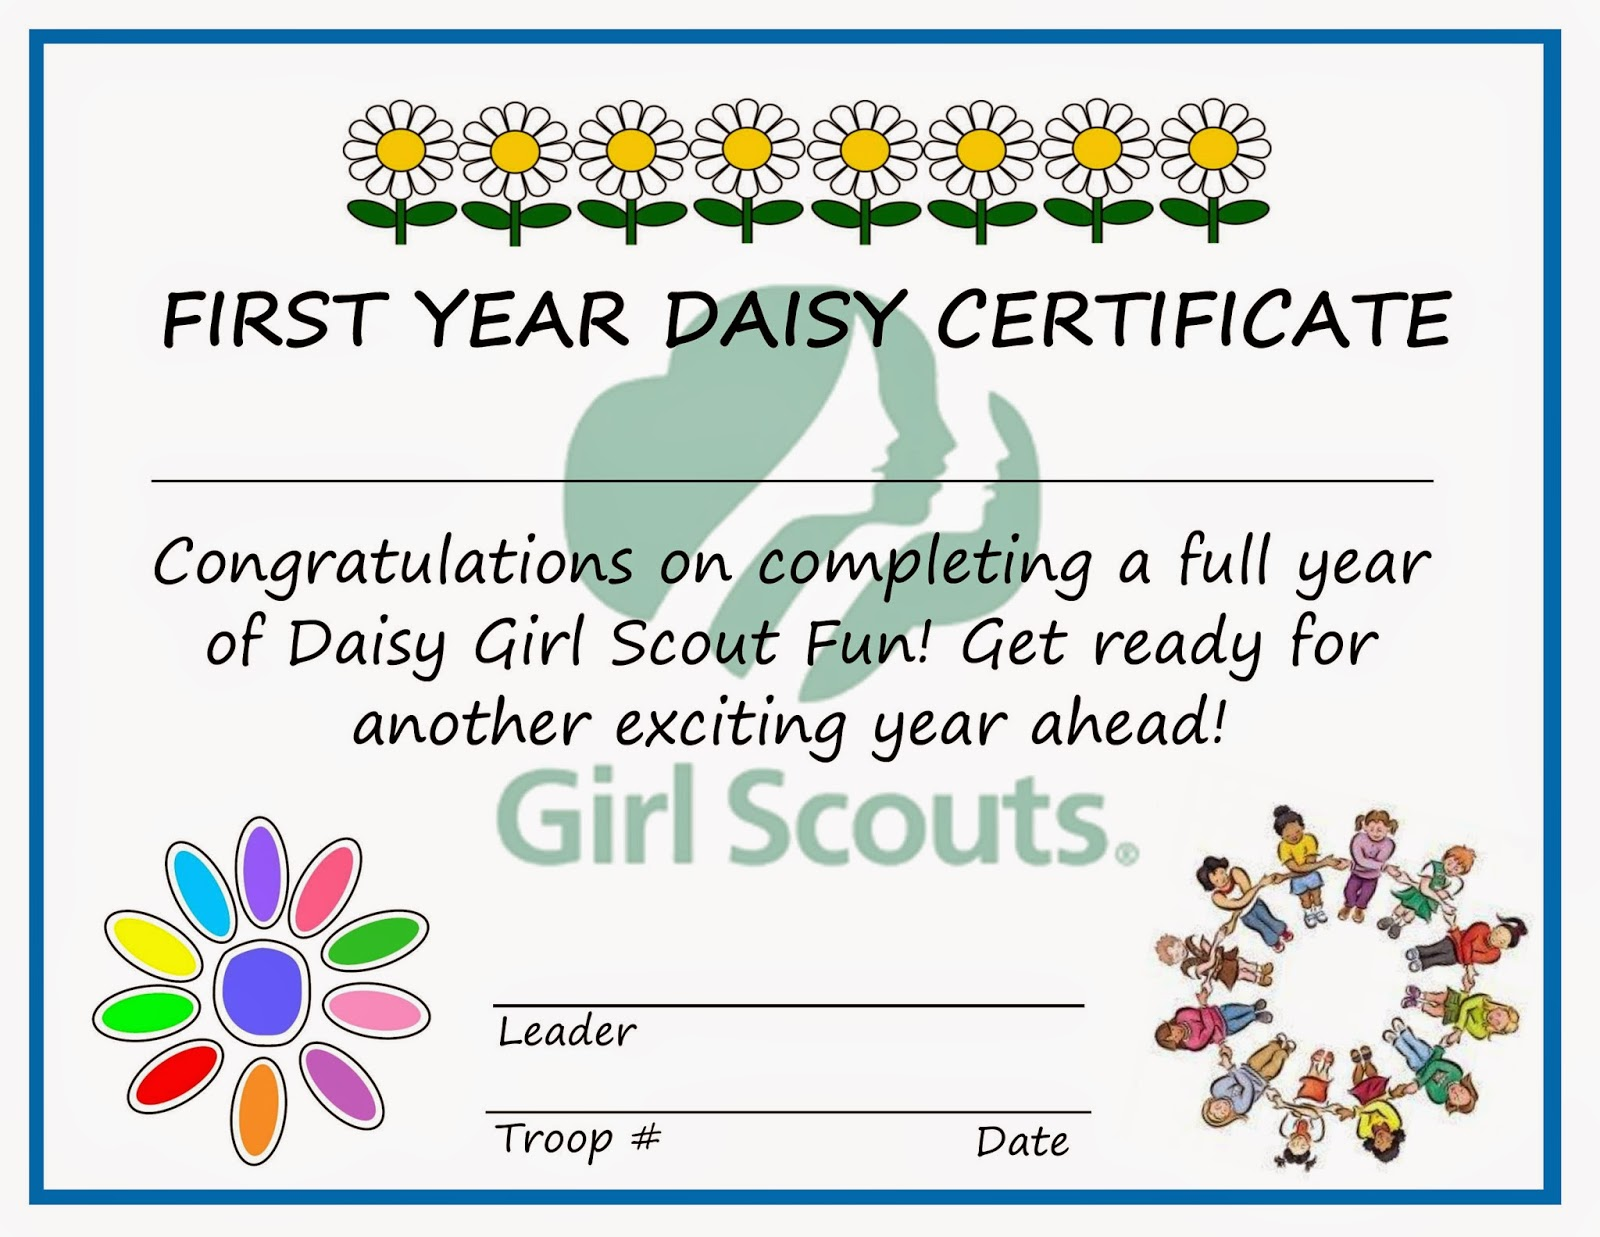 girl scout award certificate templates - a mindful momma girl scouting momma